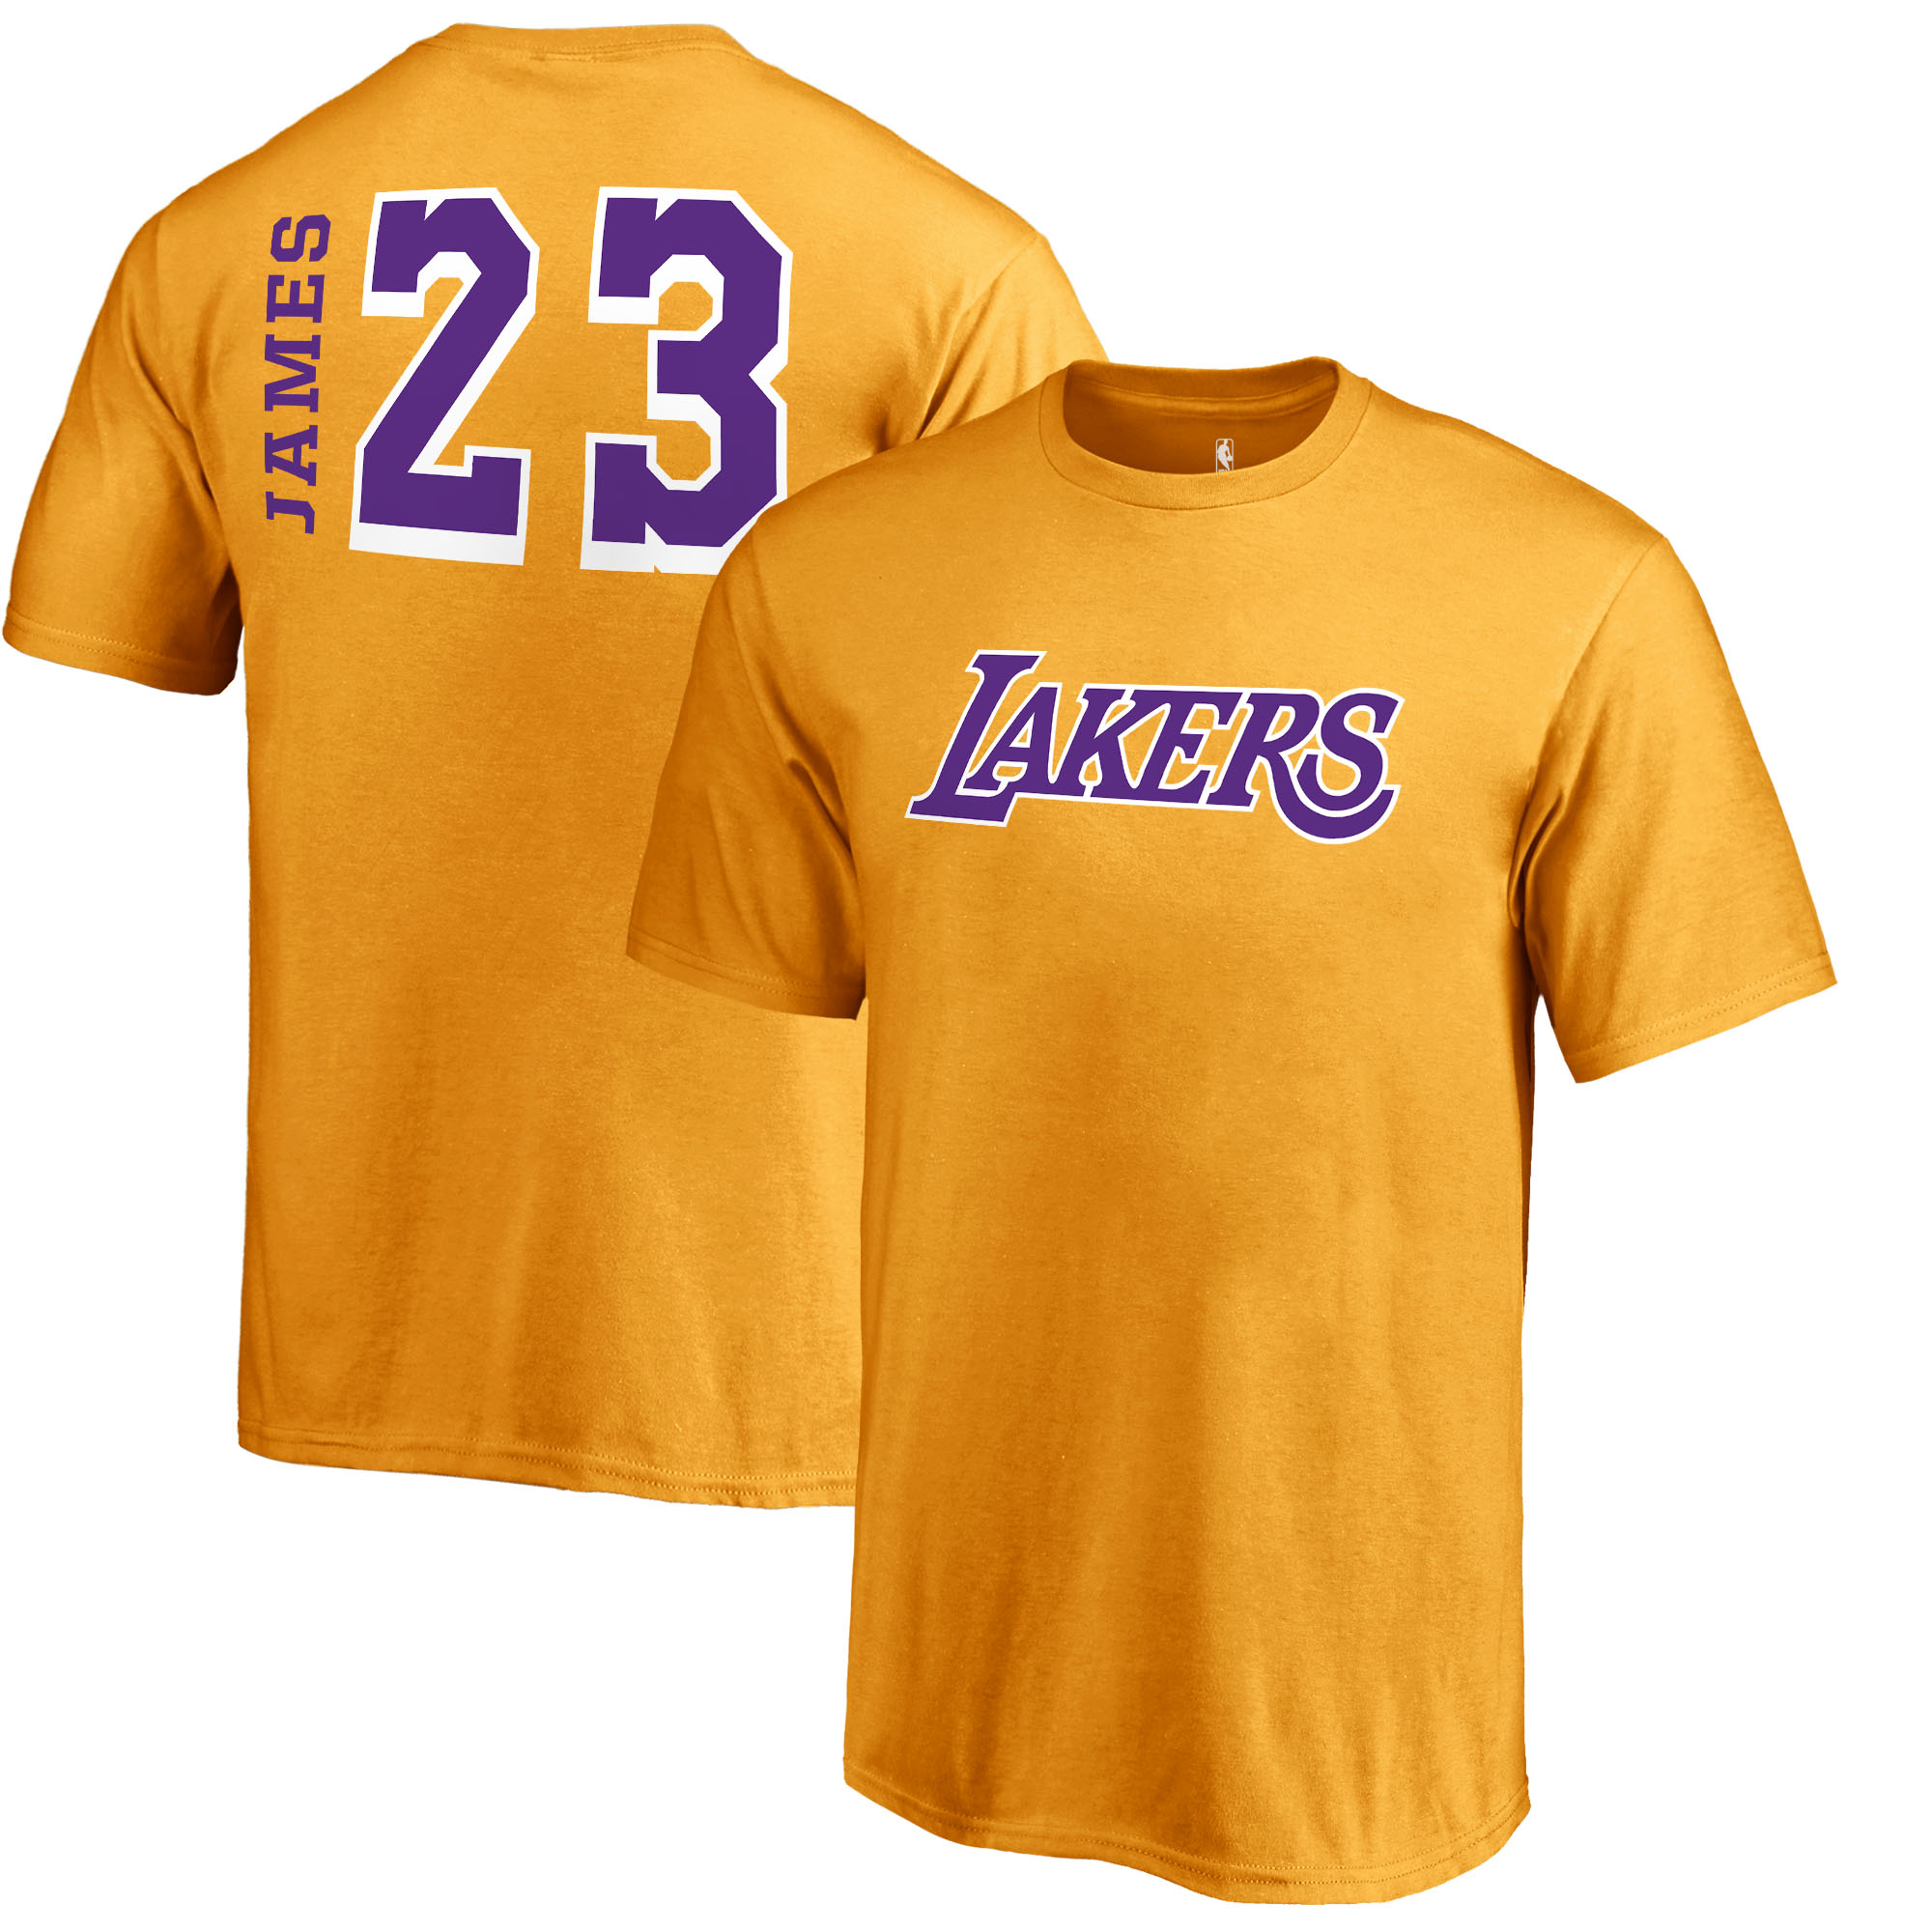 LeBron James Los Angeles Lakers Fanatics Branded Youth Sidesweep Name & Number T-Shirt - Gold